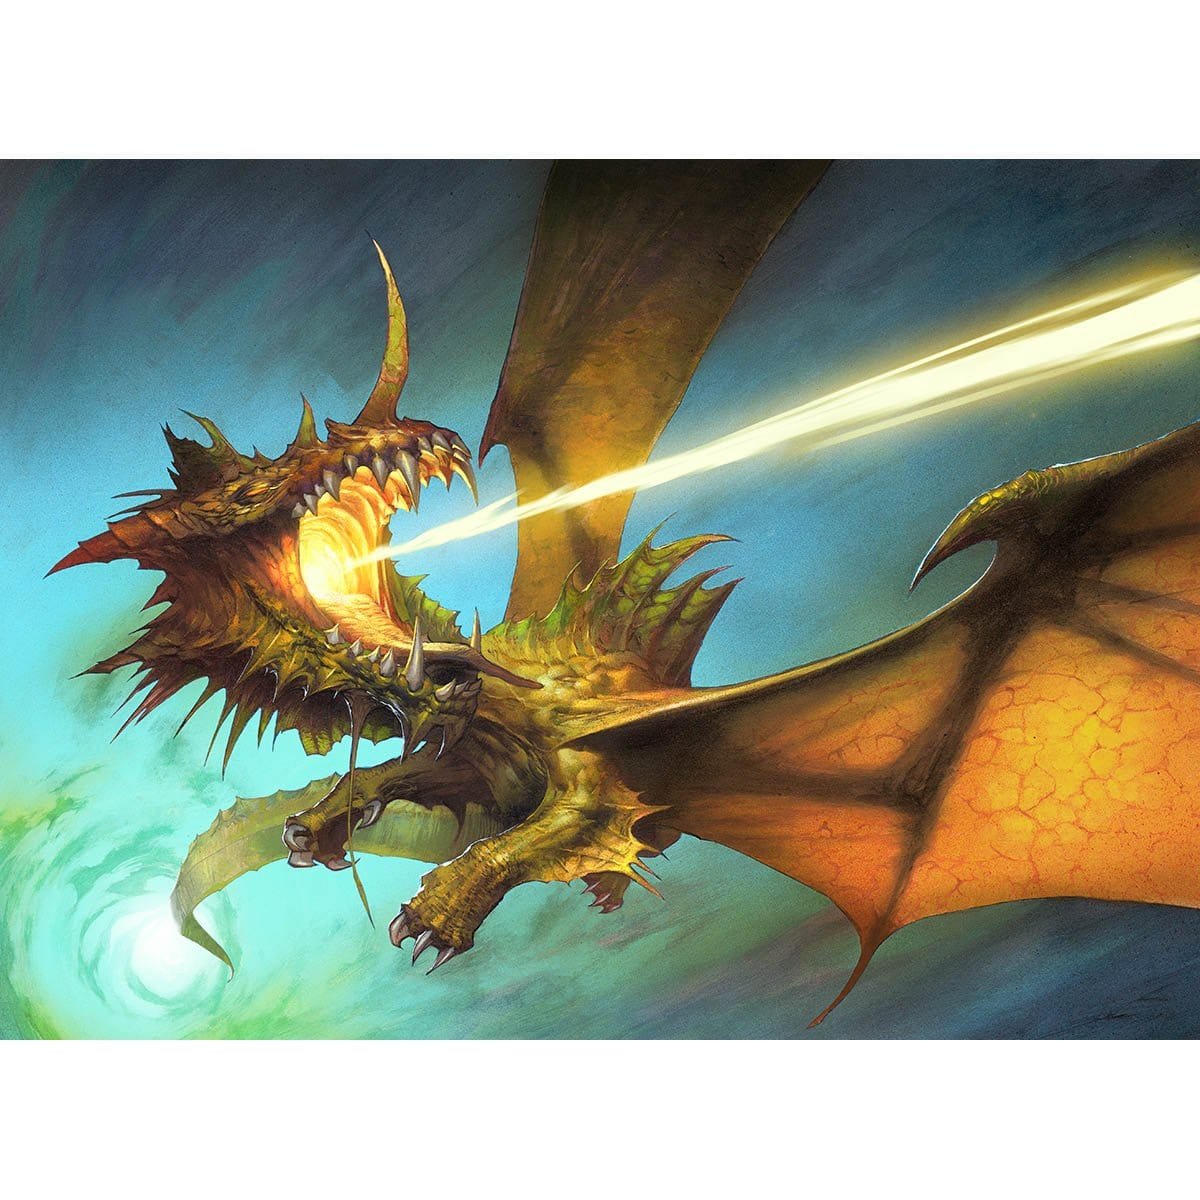 Scion of the Ur-Dragon Print - Print - Original Magic Art - Accessories for Magic the Gathering and other card games